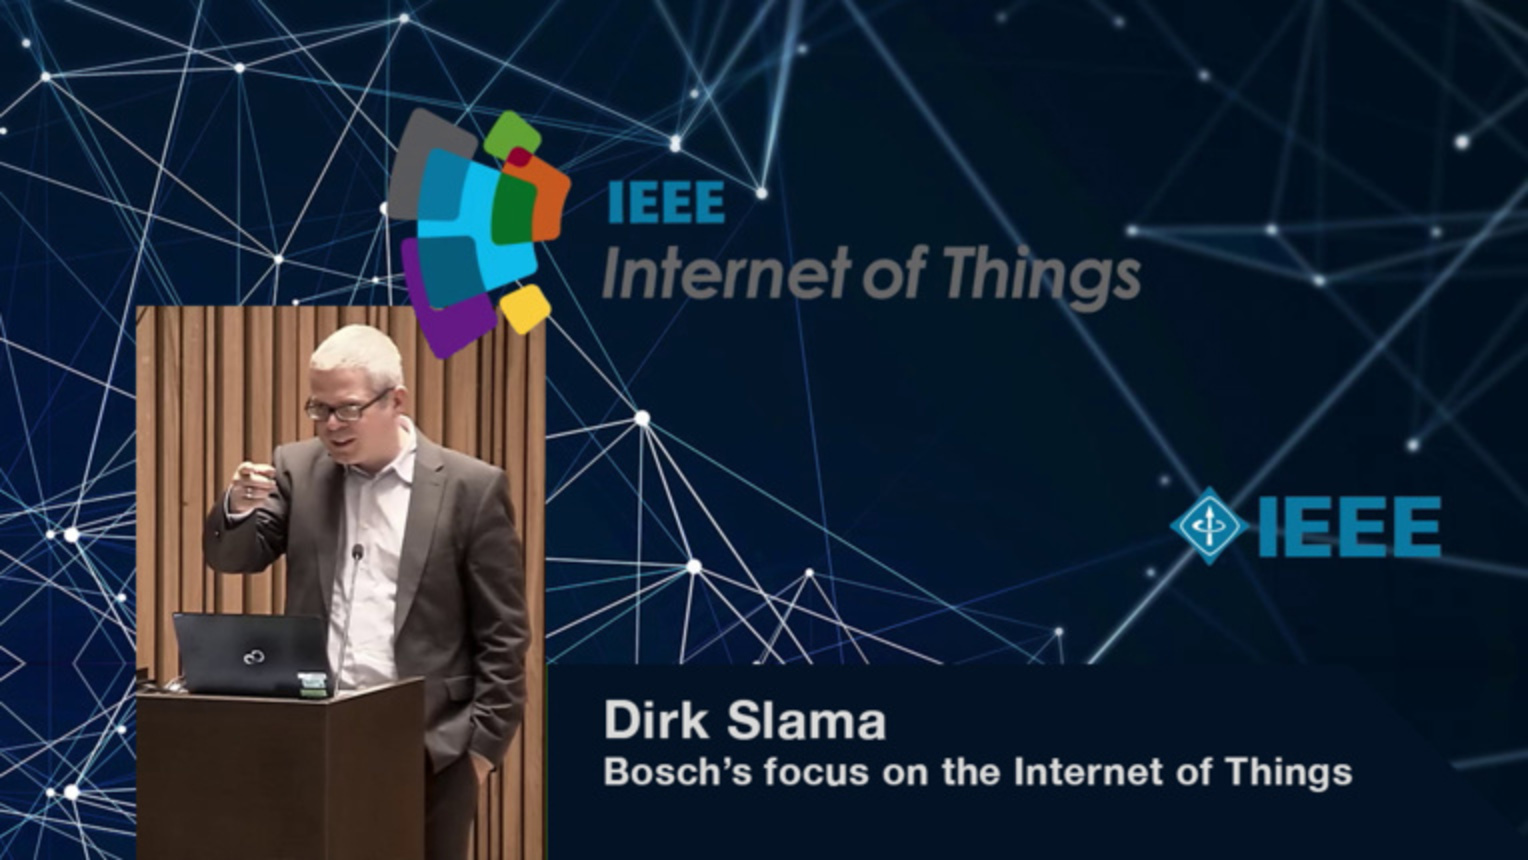 Dirk Slama on Bosch's focus on Internet of Things - WF-IoT 2015